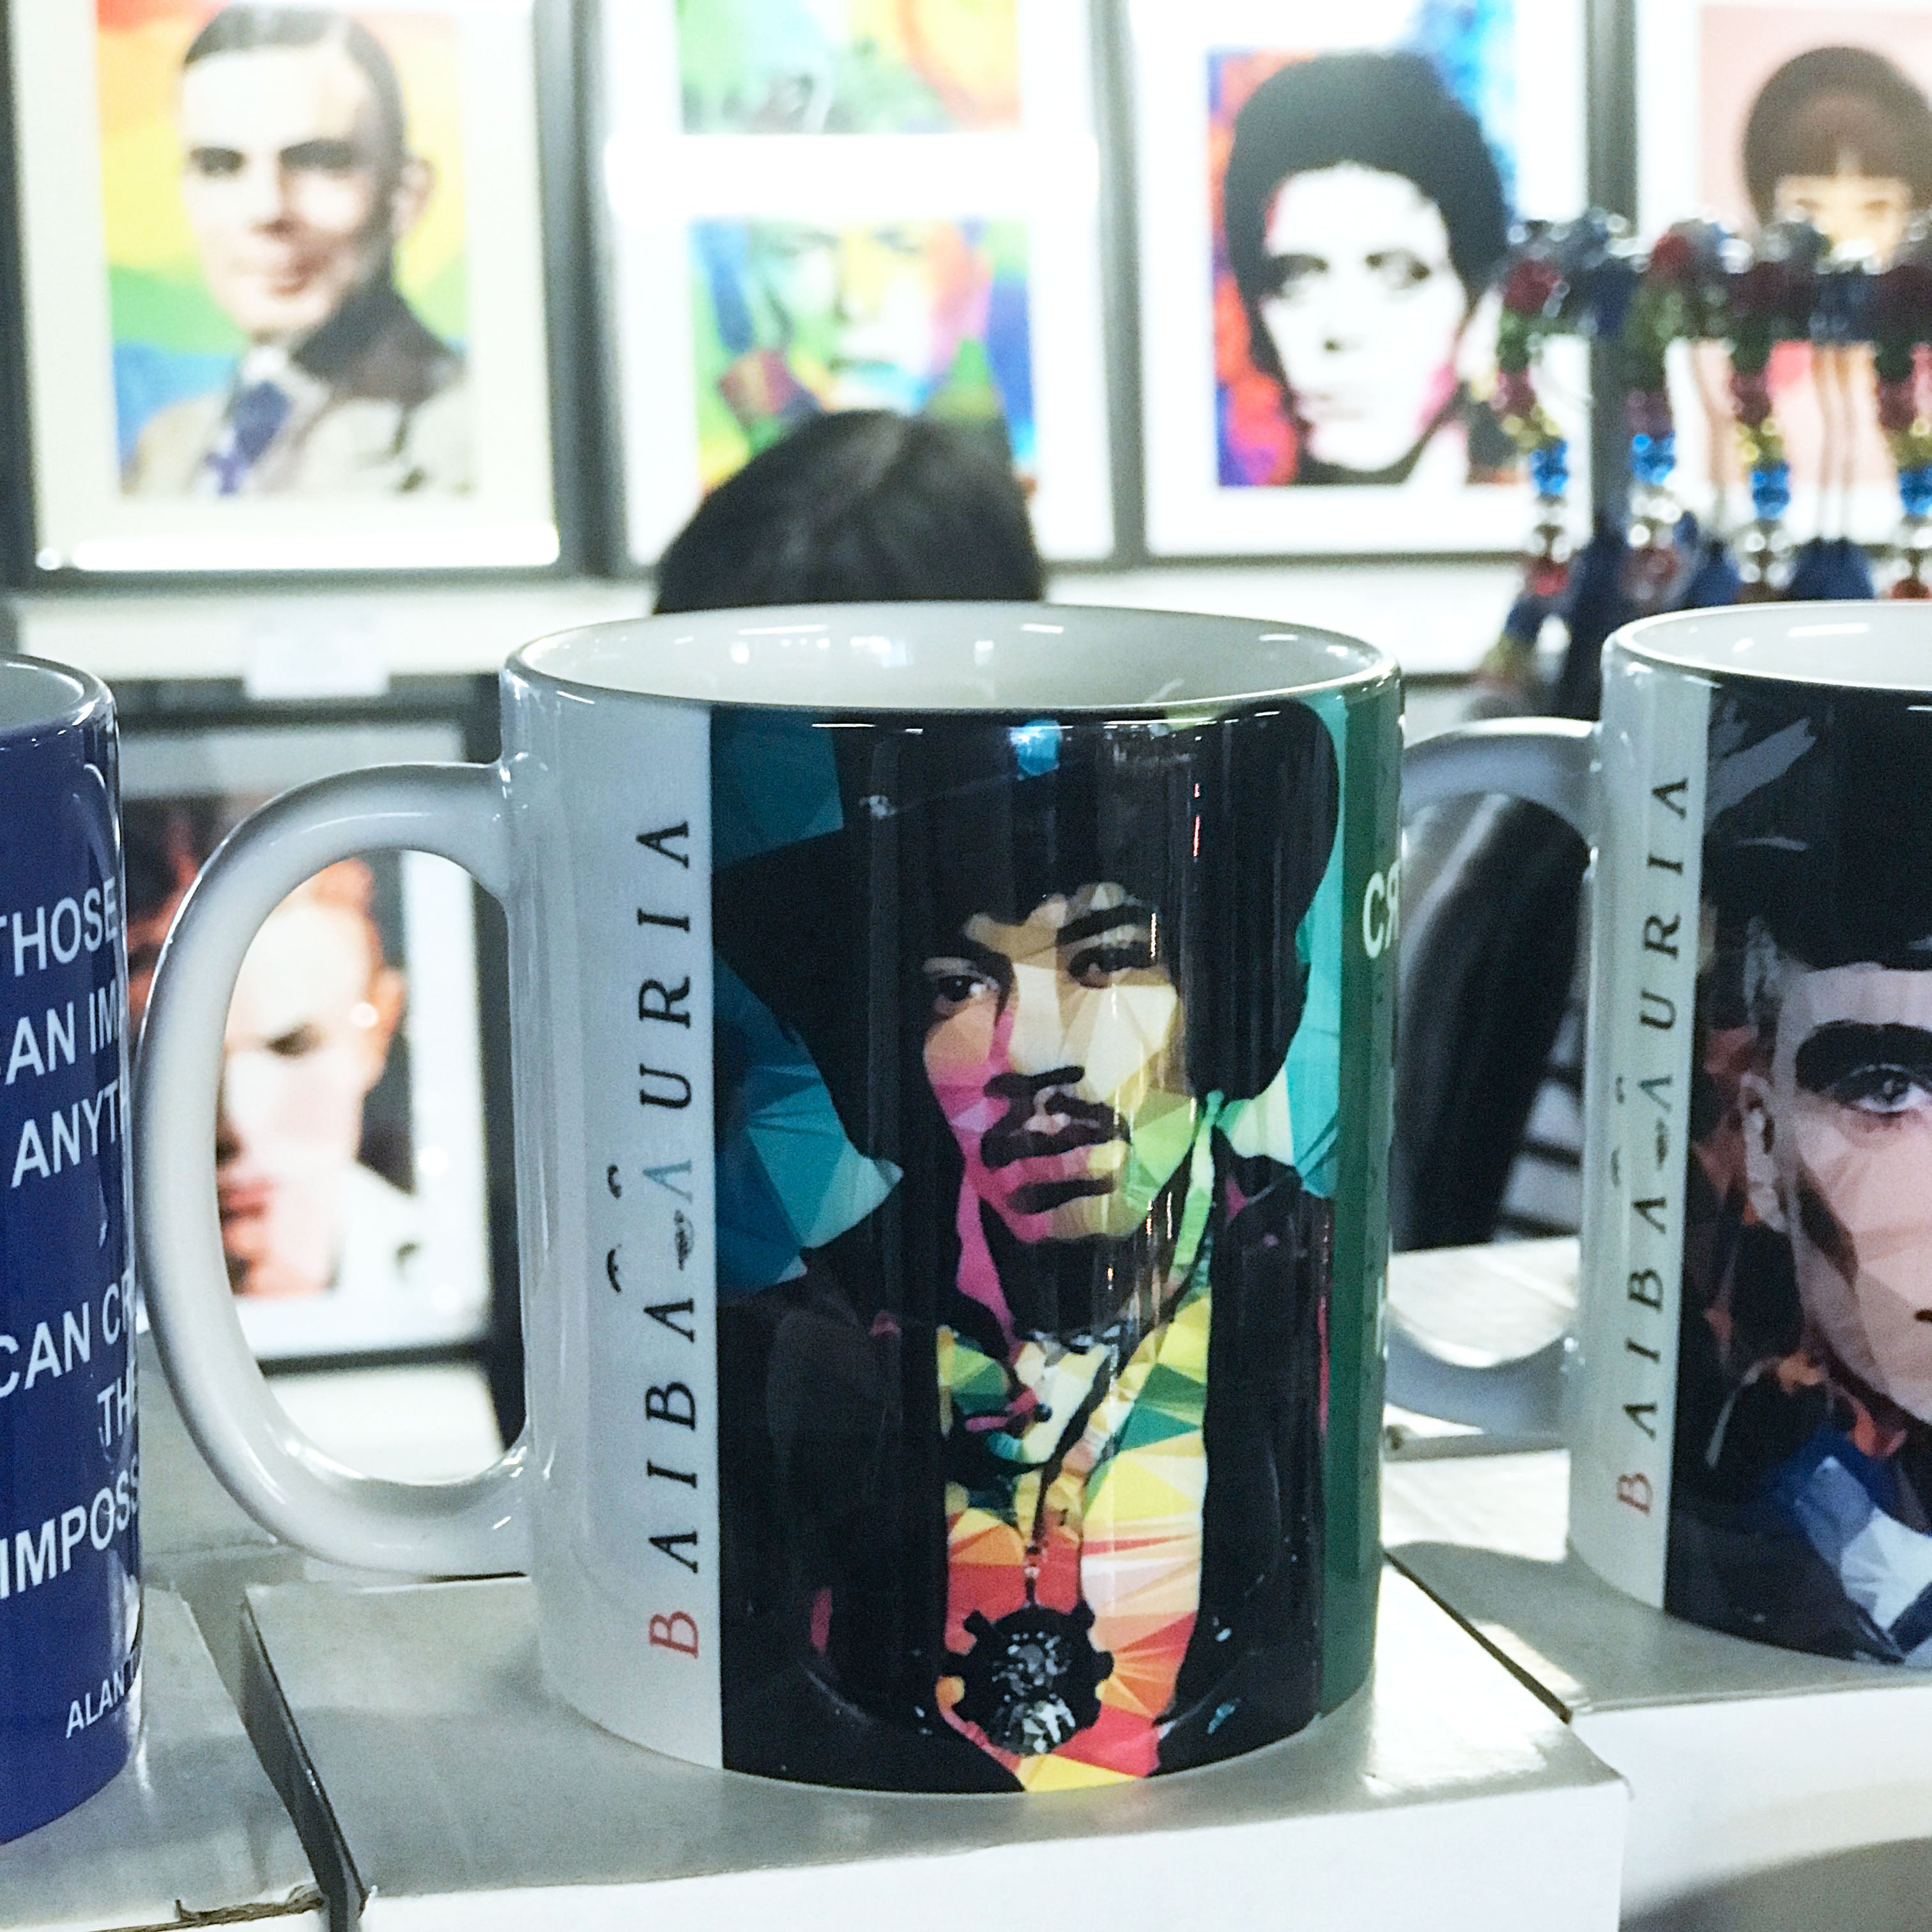 Jimi Hendrix #1 Mug by Baiba Auria - Egoiste Gallery - Art Gallery in Manchester City Centre